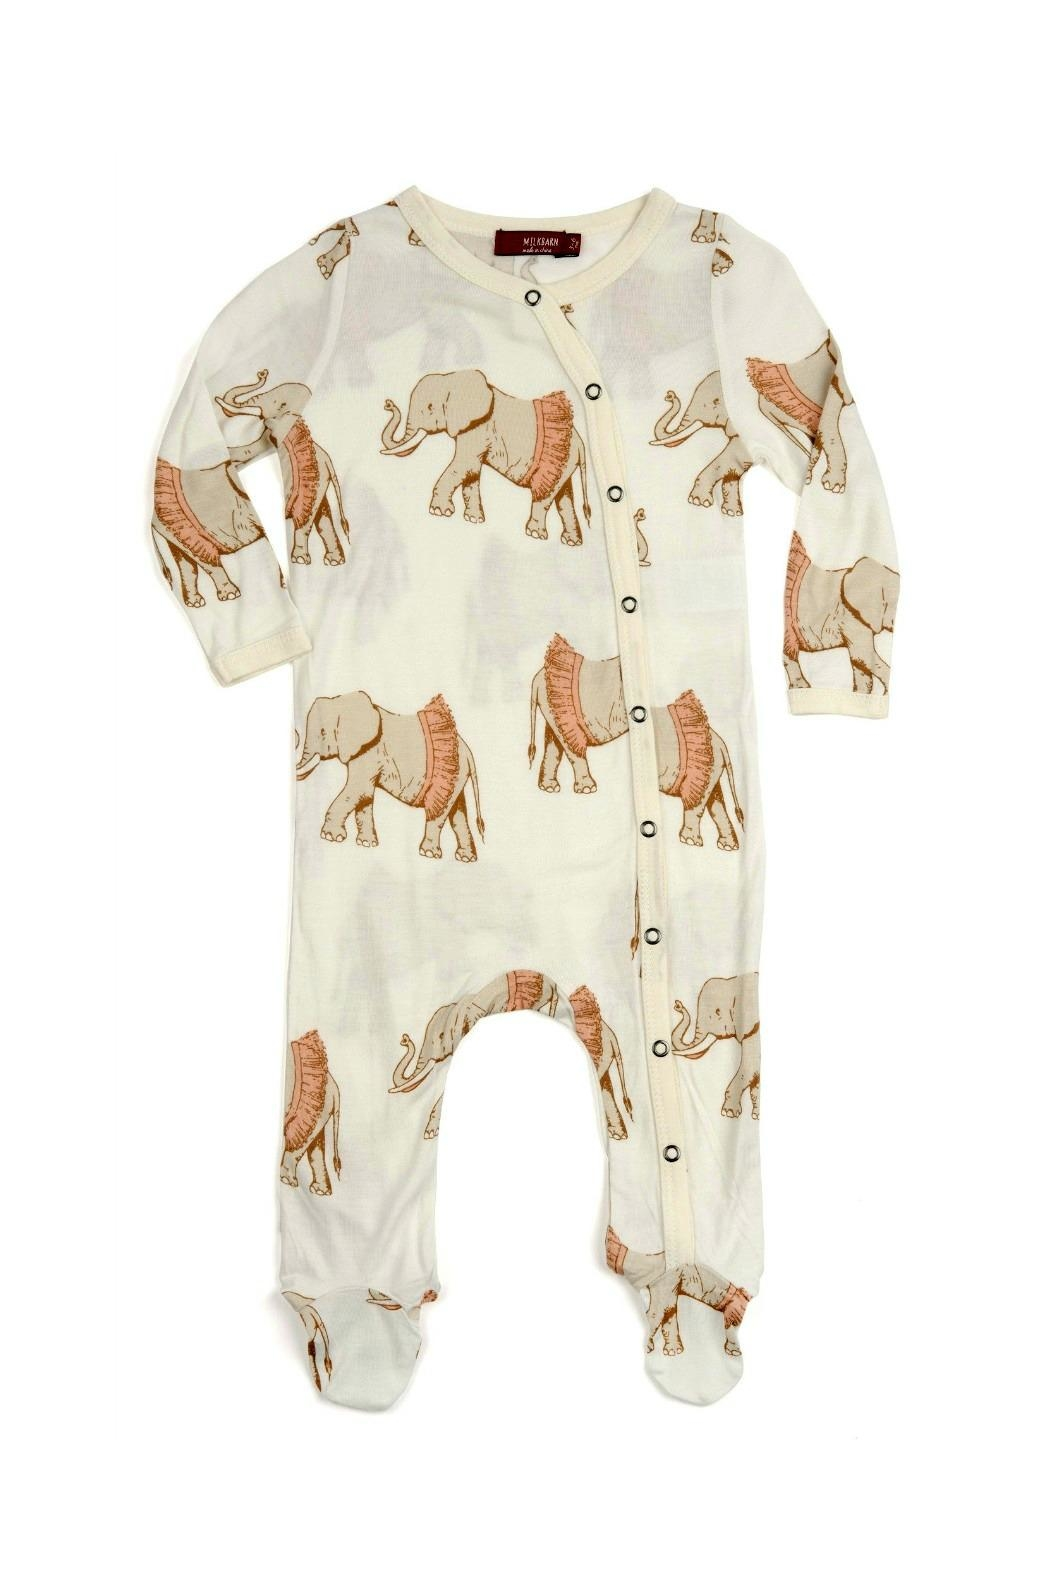 Milkbarn Kids Footed Romper Elephant-Wearing-A-Tutu - Front Cropped Image